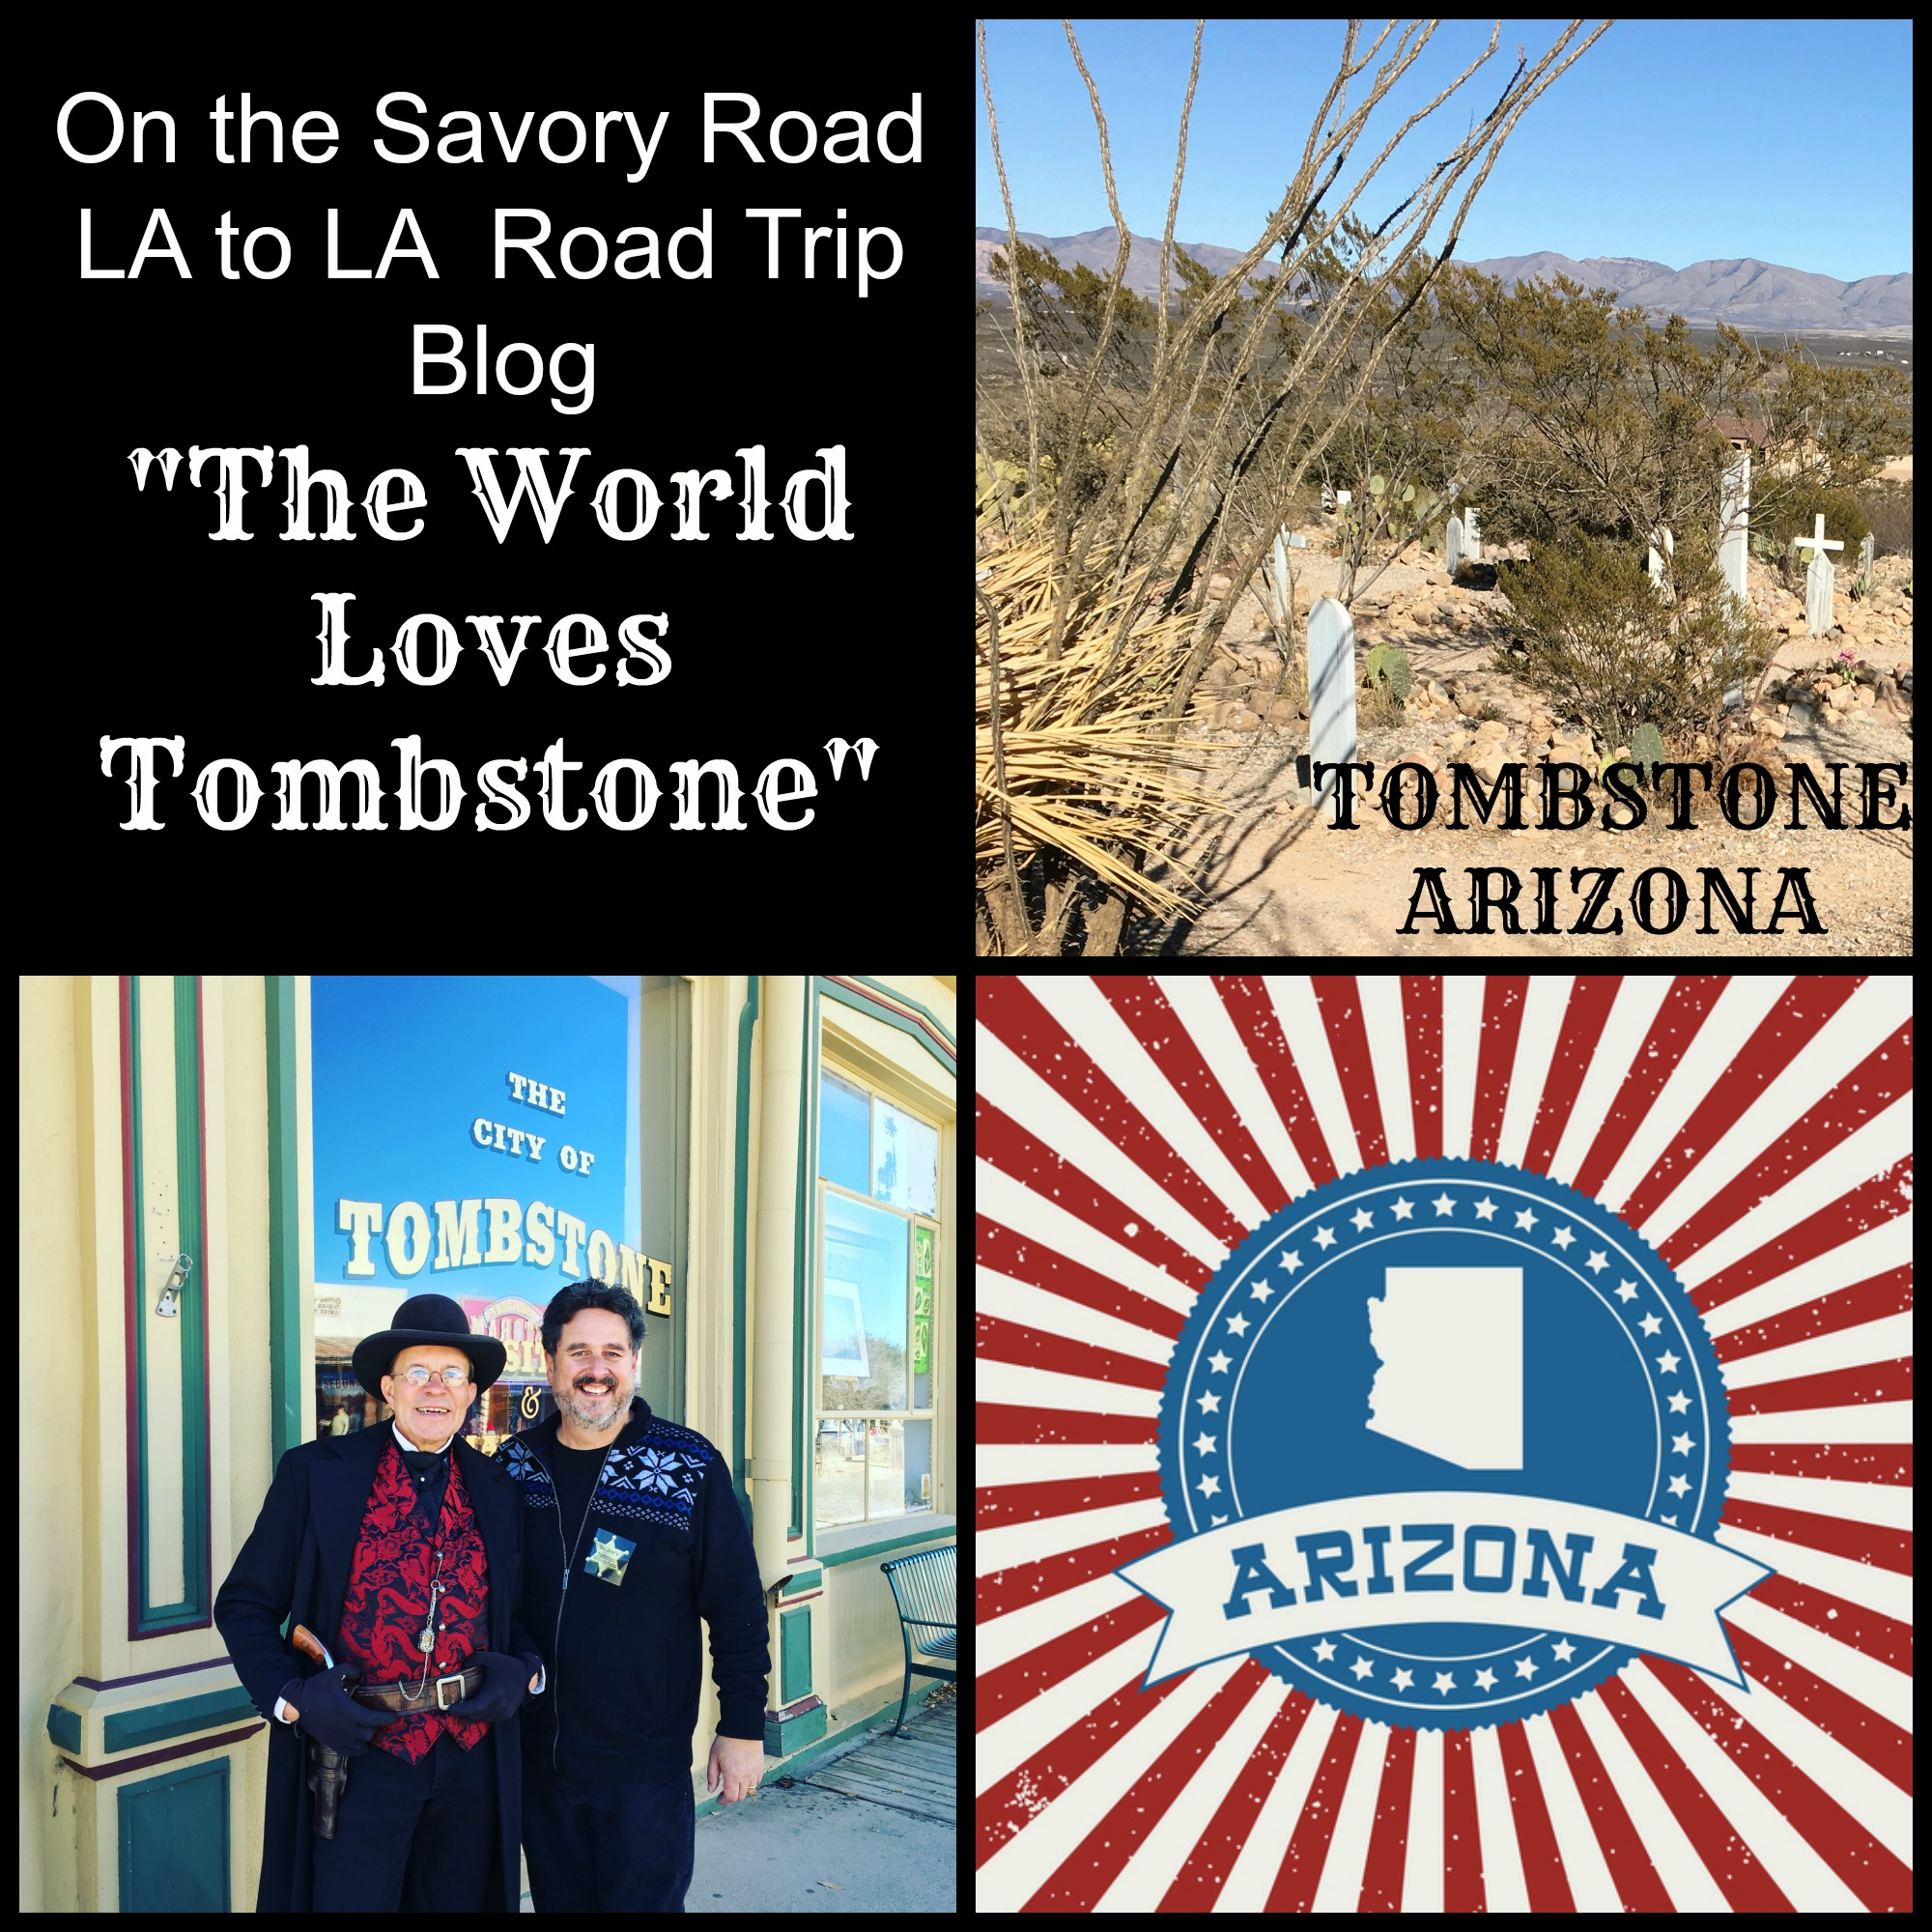 BLOG: The World Loves Tombstone